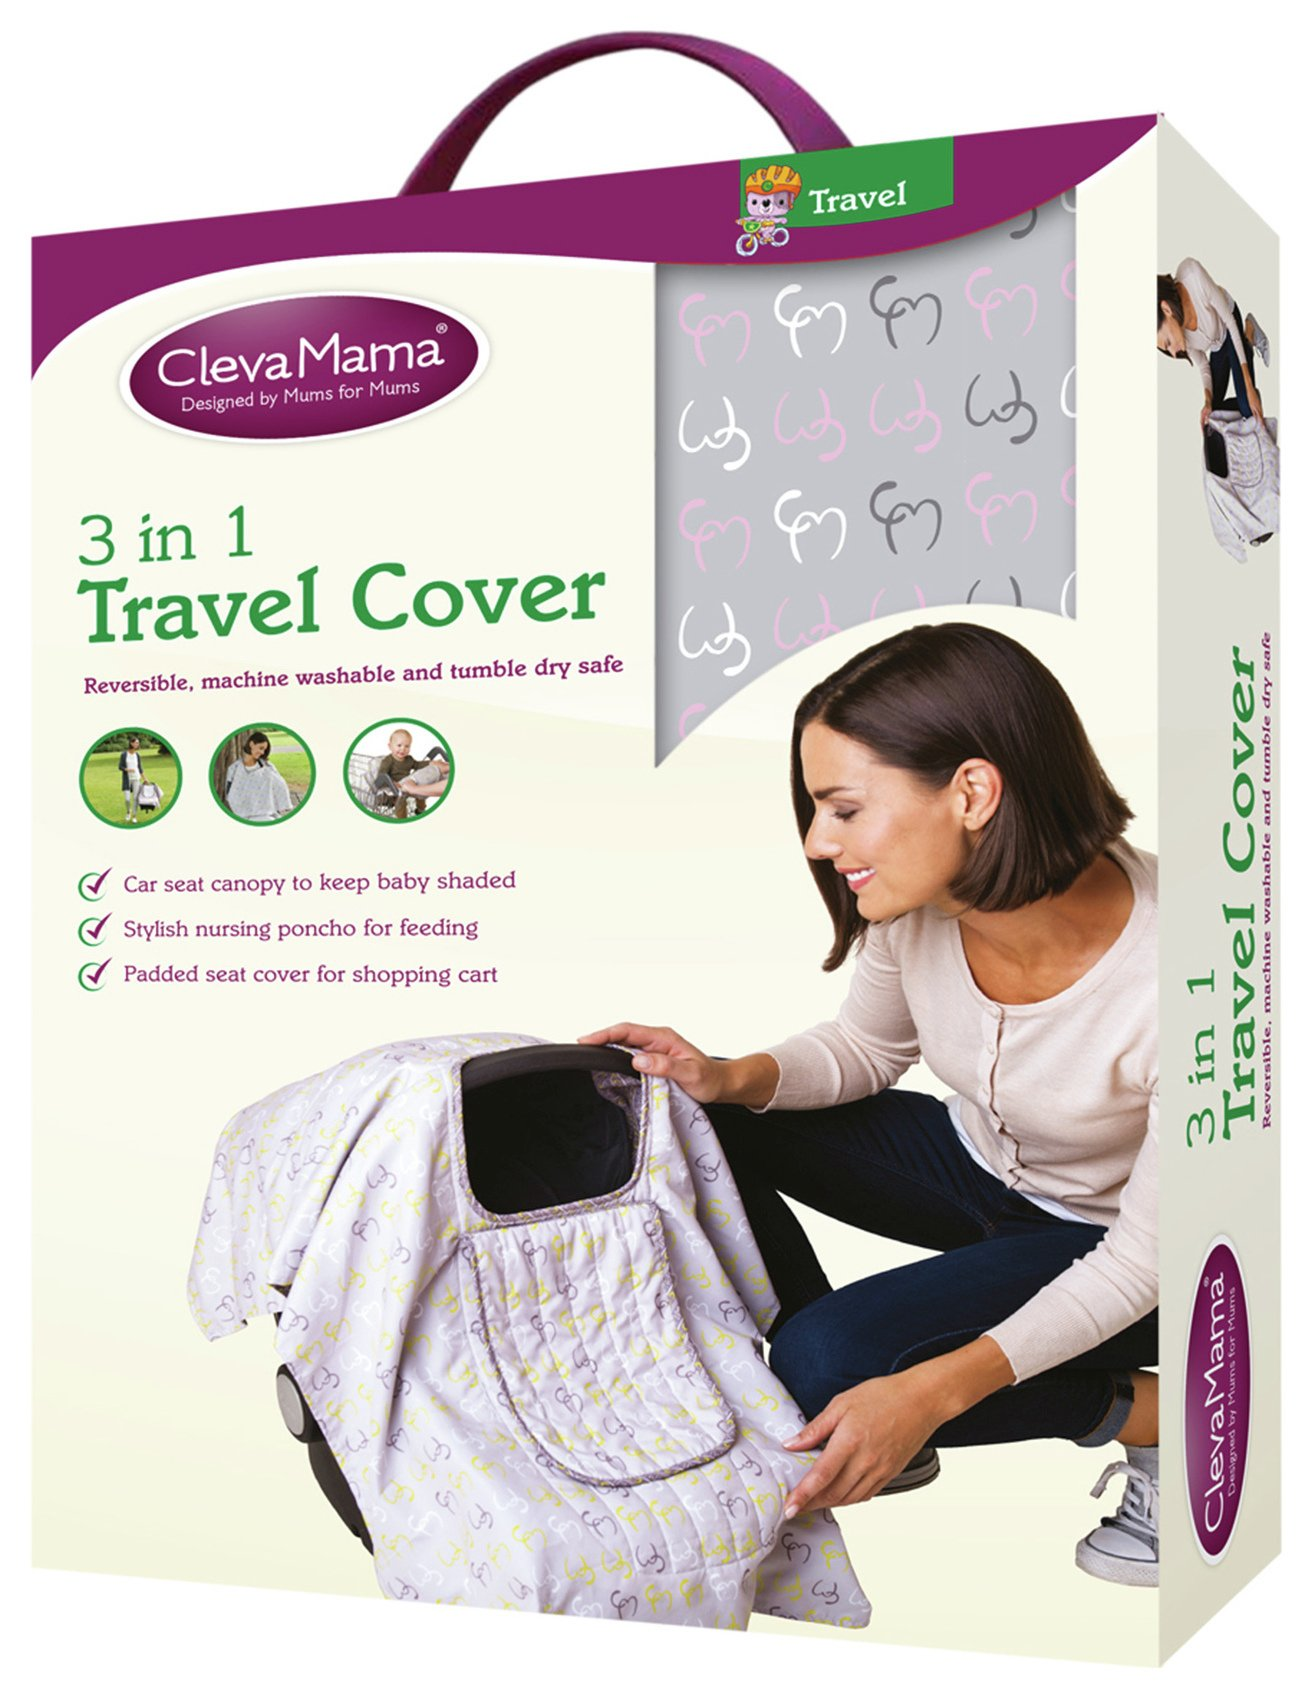 Image of Clevamama 3 in 1 Travel Cover - Rose.